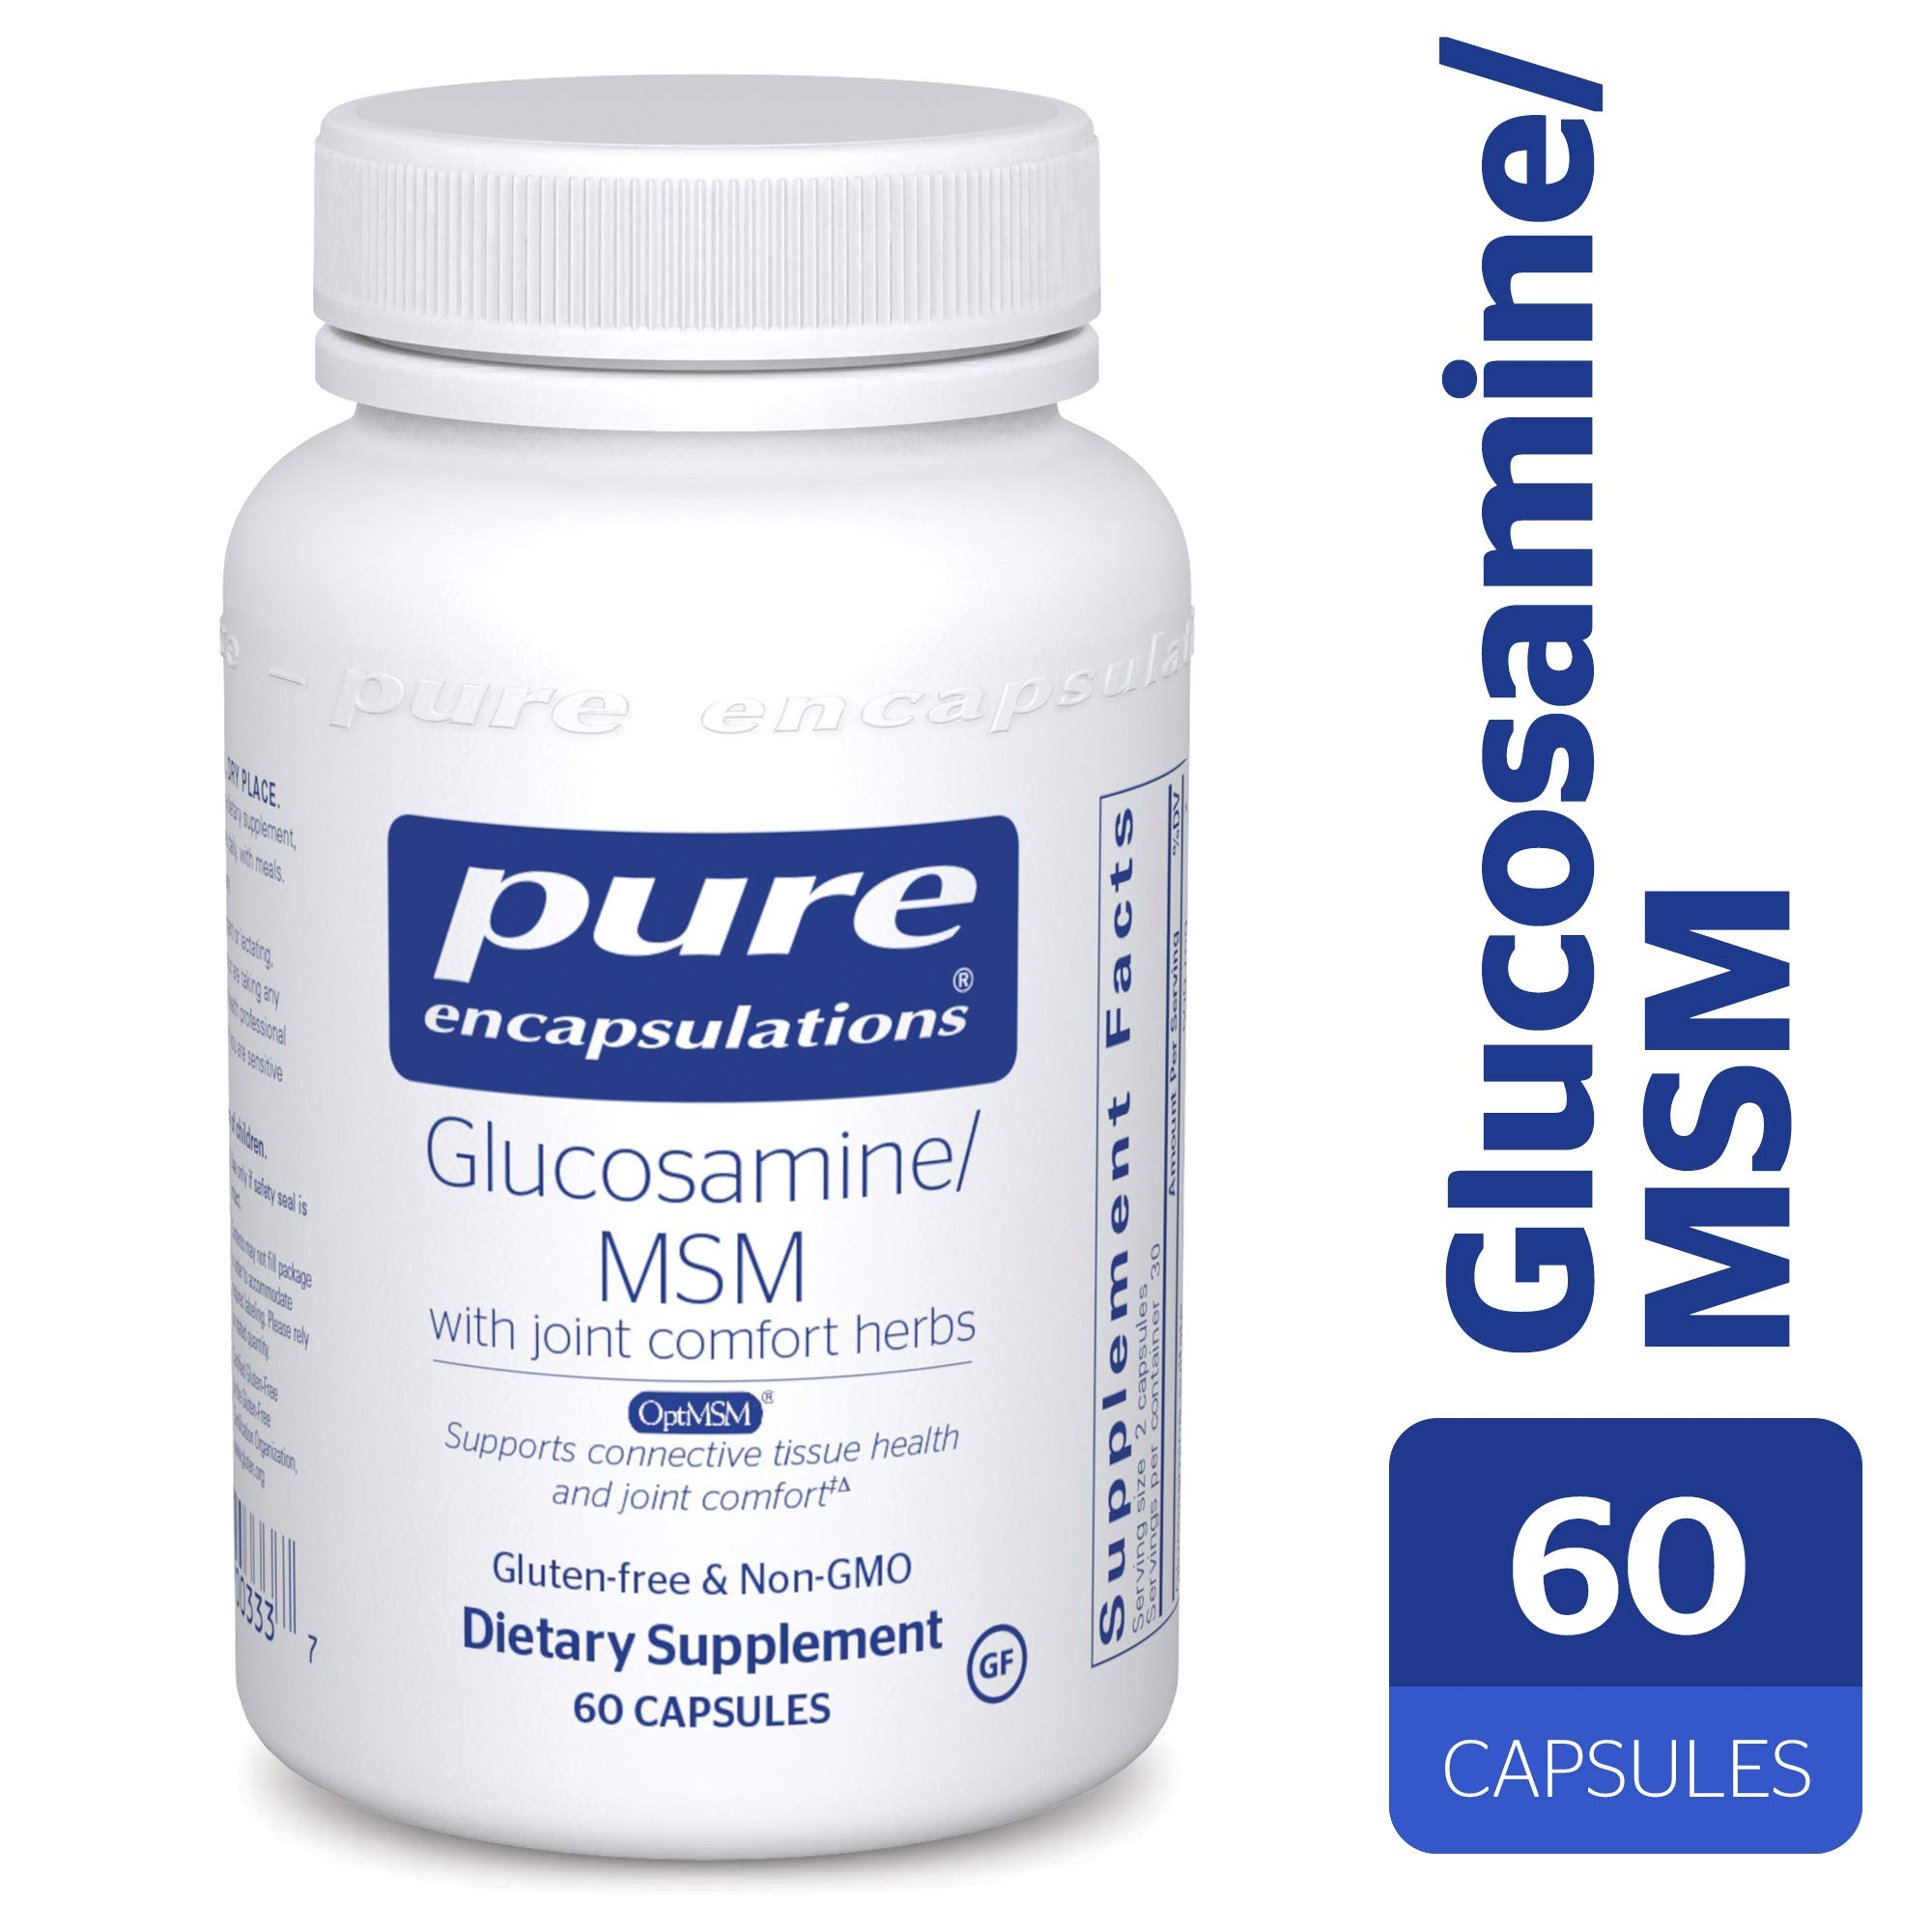 Pure Encapsulations - Glucosamine/MSM - Dietary Supplement Support for Healthy Joint Function and Tissues* - 60 Capsules